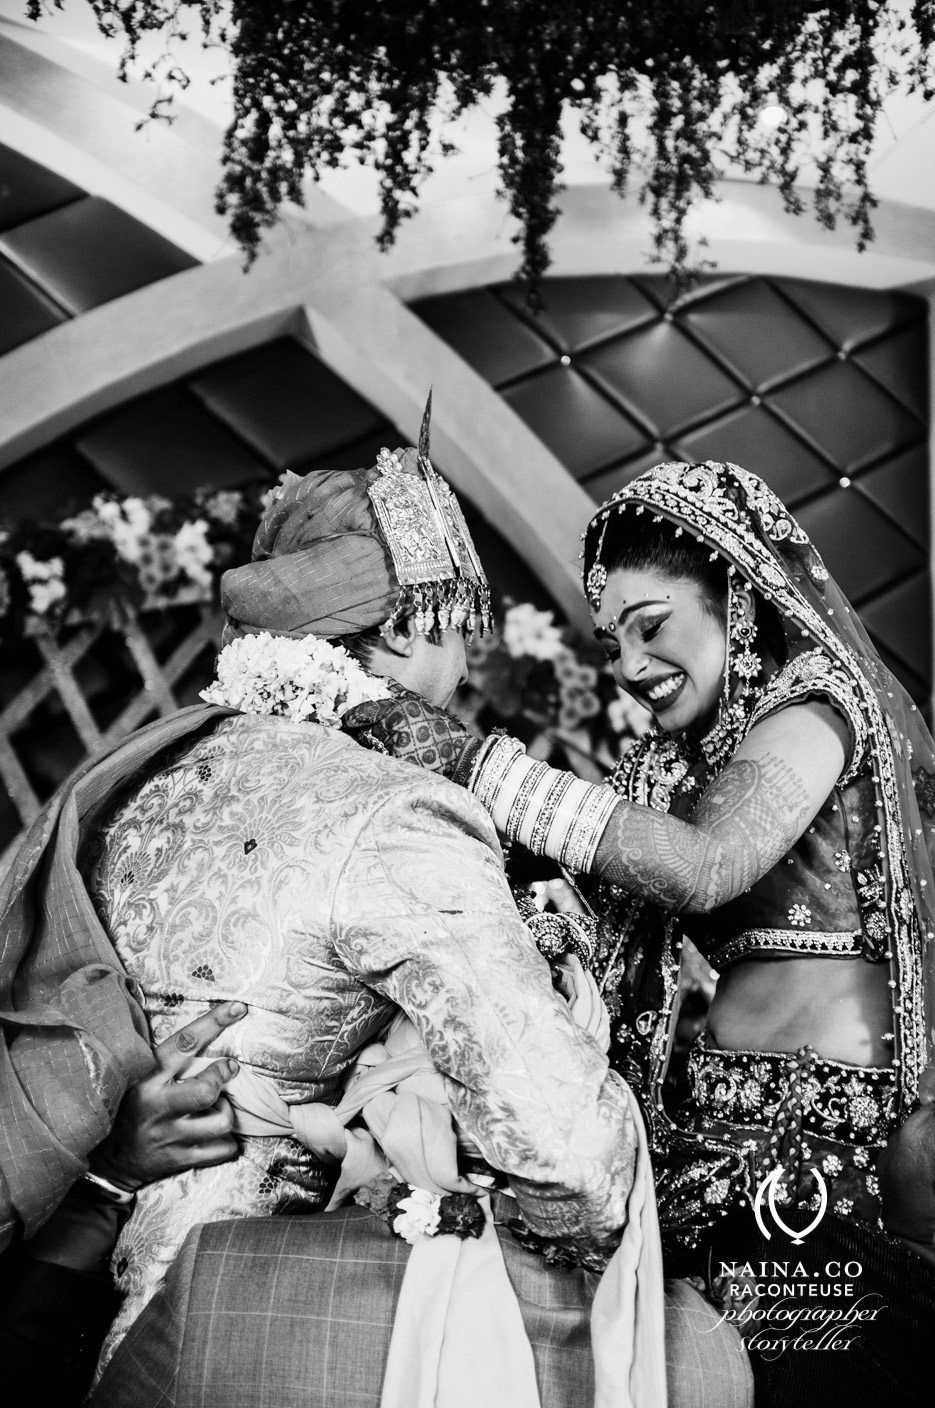 Naina.co-February-2014-Bride-Groom-Jaimala-Varmala-Marriage-Ceremony-India-Photographer-Storyteller-Raconteuse